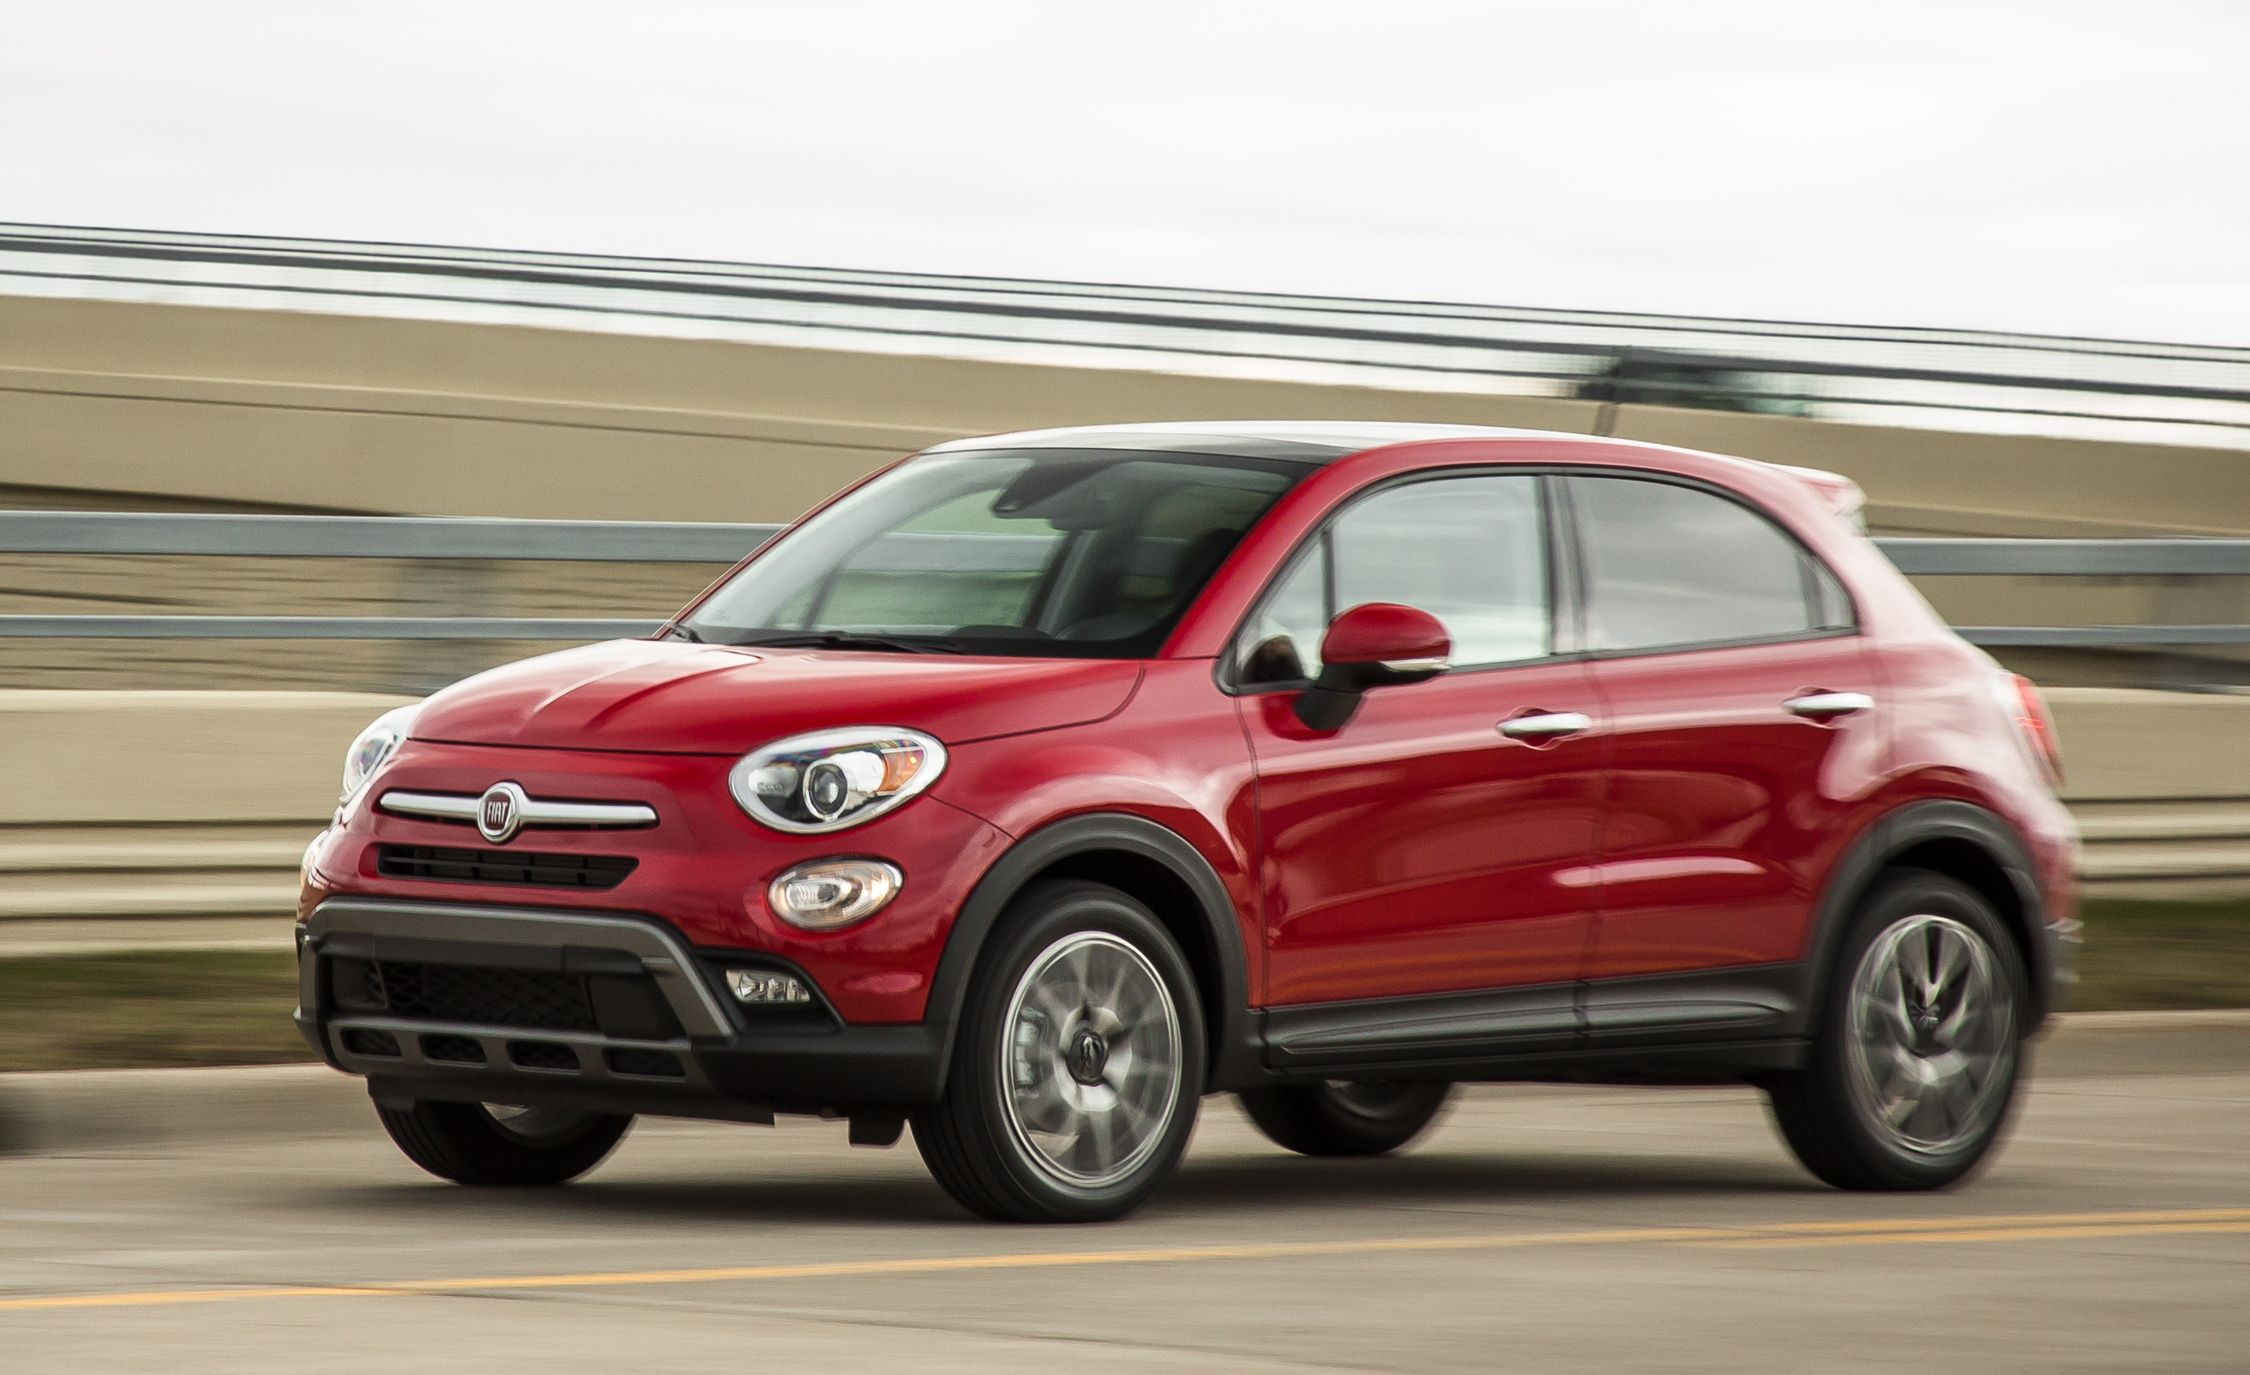 fiat 500x reviews fiat 500x price photos and specs car and driver. Black Bedroom Furniture Sets. Home Design Ideas